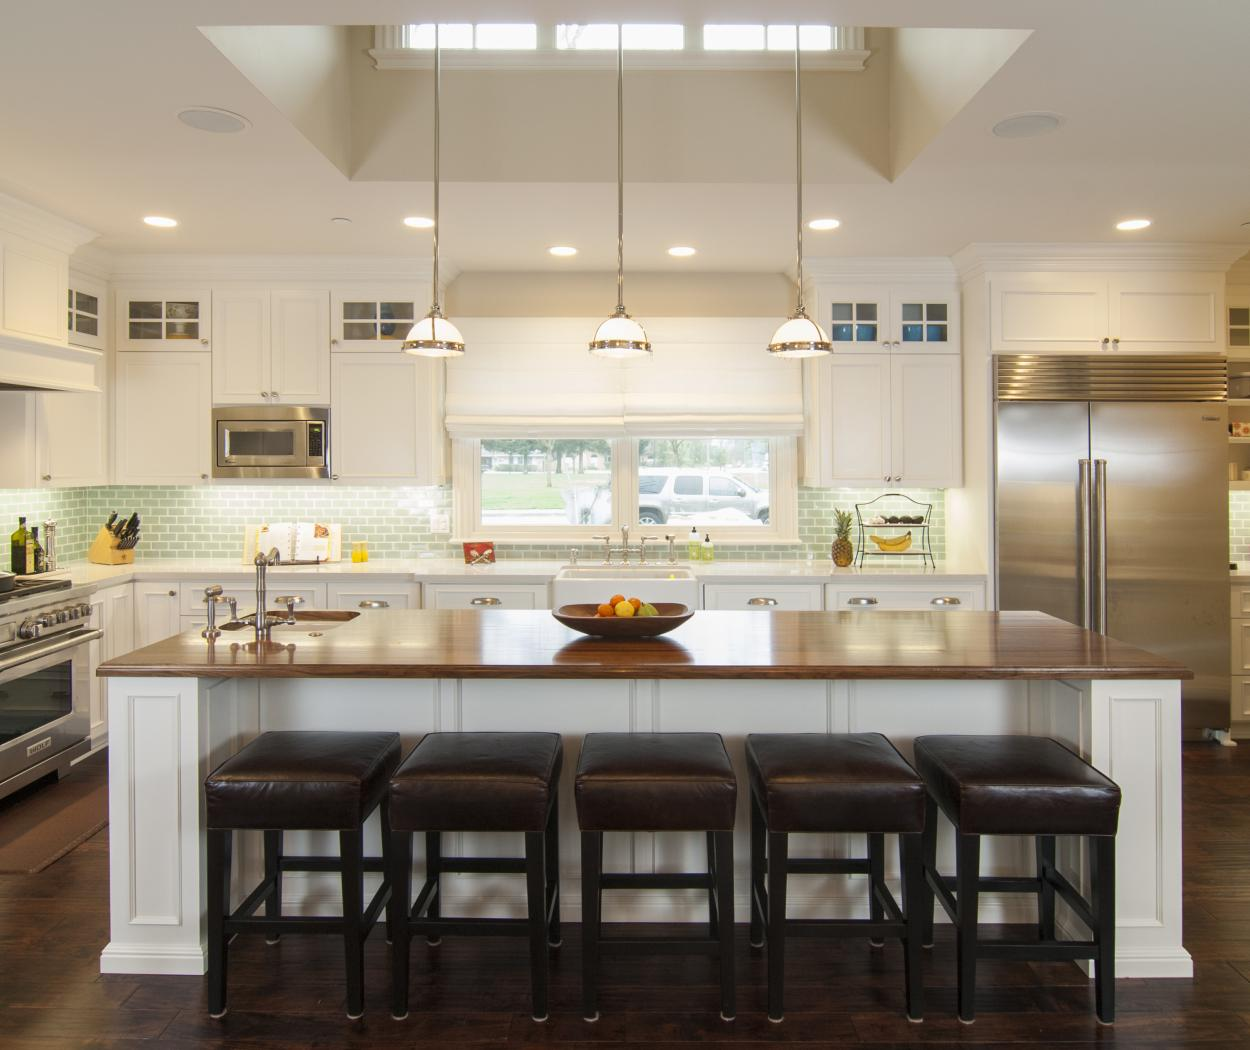 Transitional White Kitchen with a Long Matching Island, Walnut Counter Top, Glass Doors and Stainless Steel Appliances